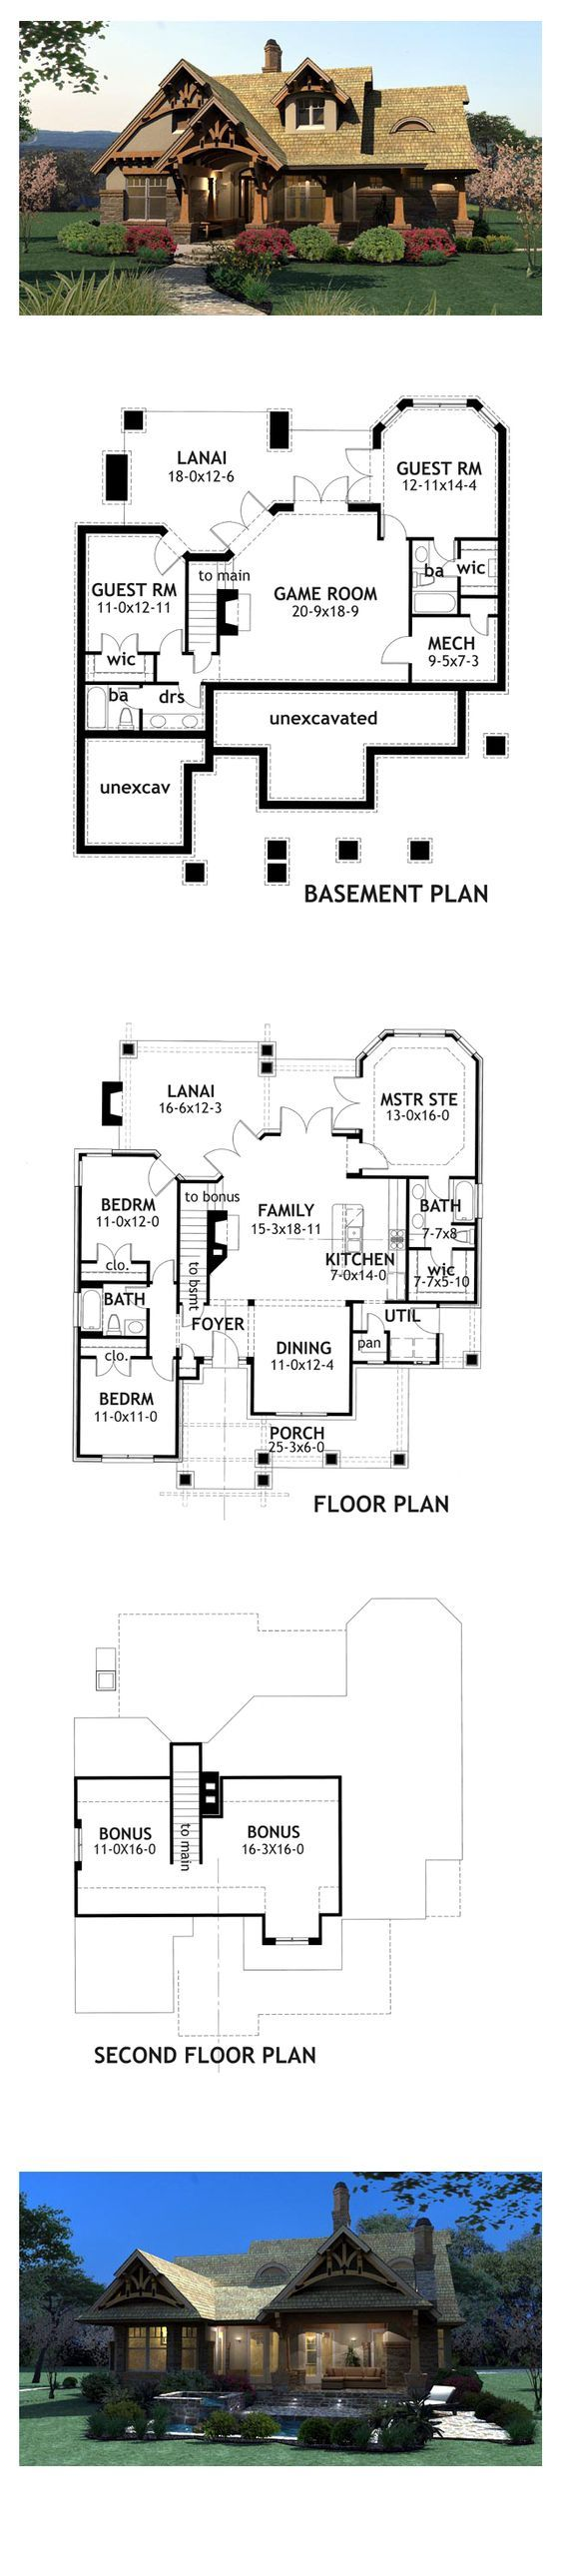 Craftsman Style COOL House Plan ID: chp-49217 | Total Living Area: 1421 sq. ft, 3 bedrooms & 2 bathrooms. #houseplan #craftsmanstyle